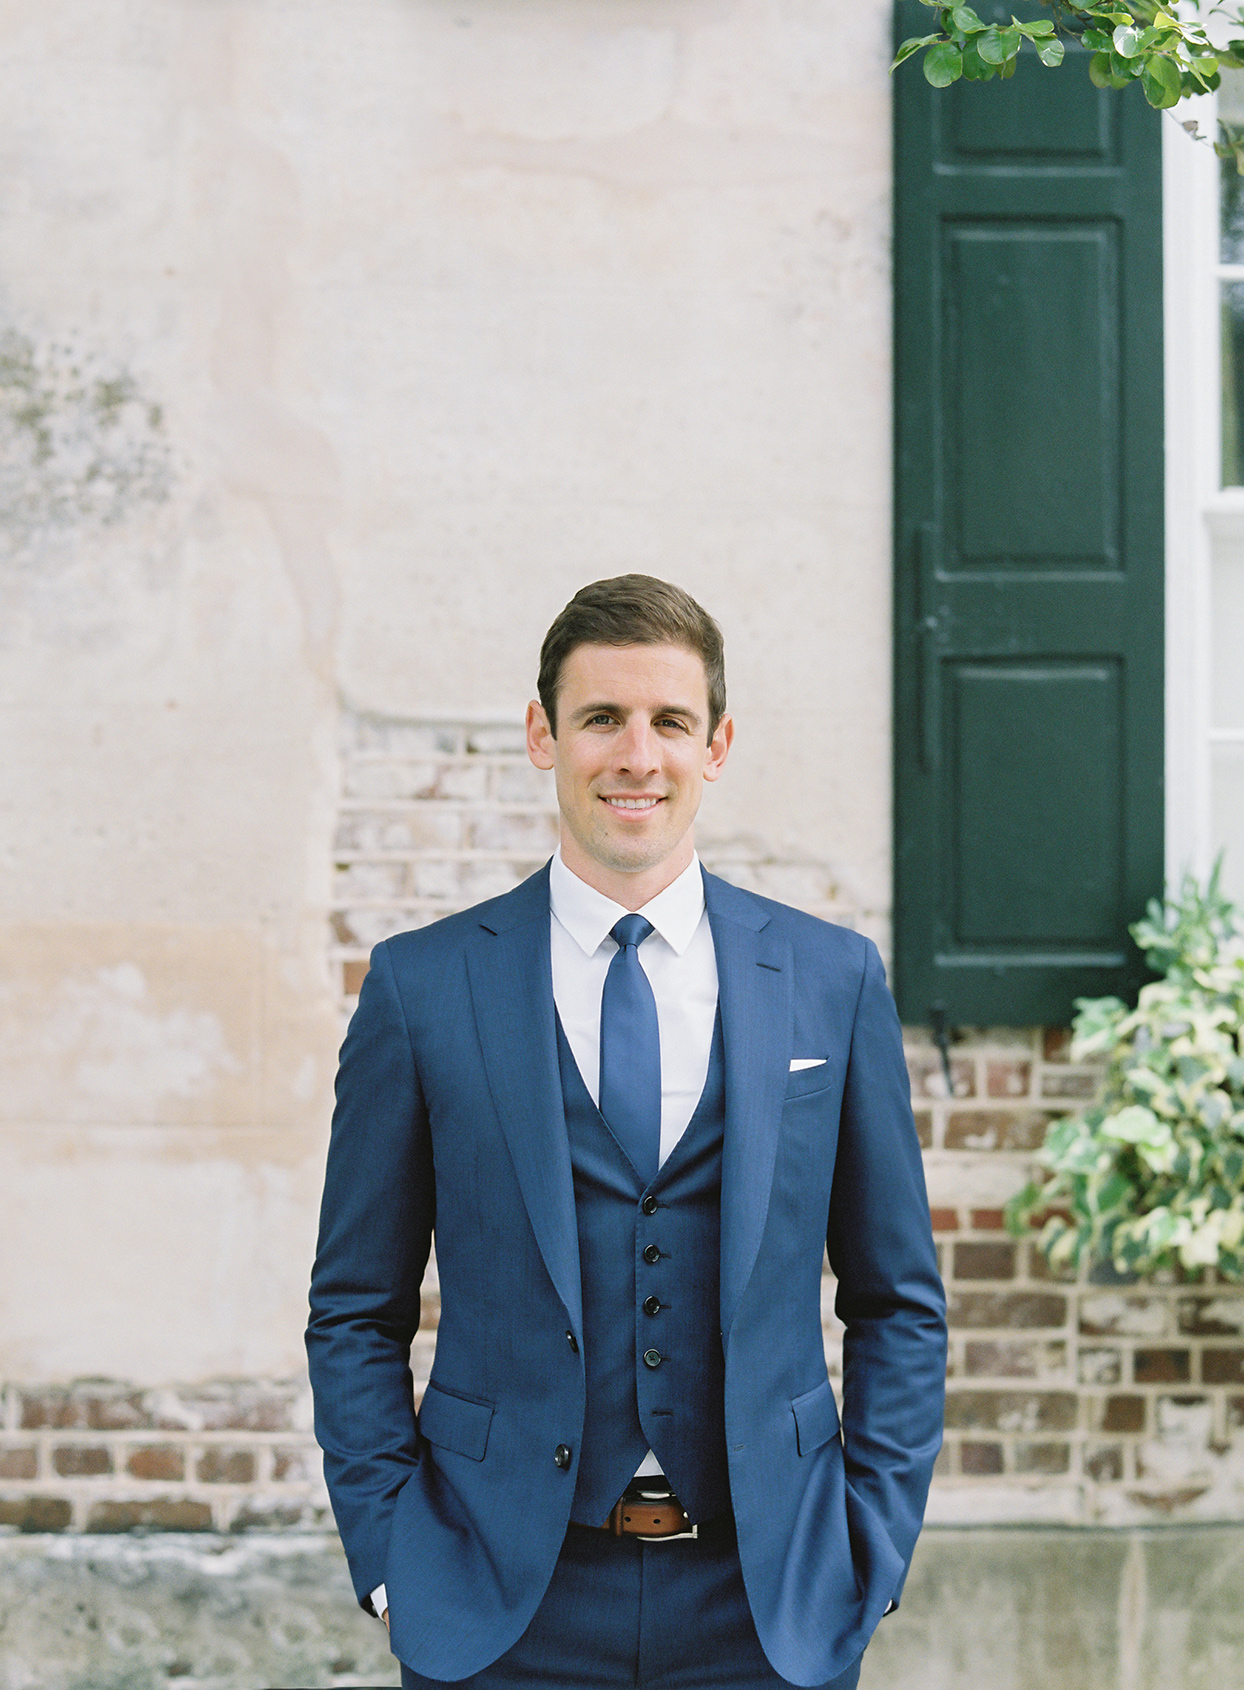 paula terence wedding groom in blue suit